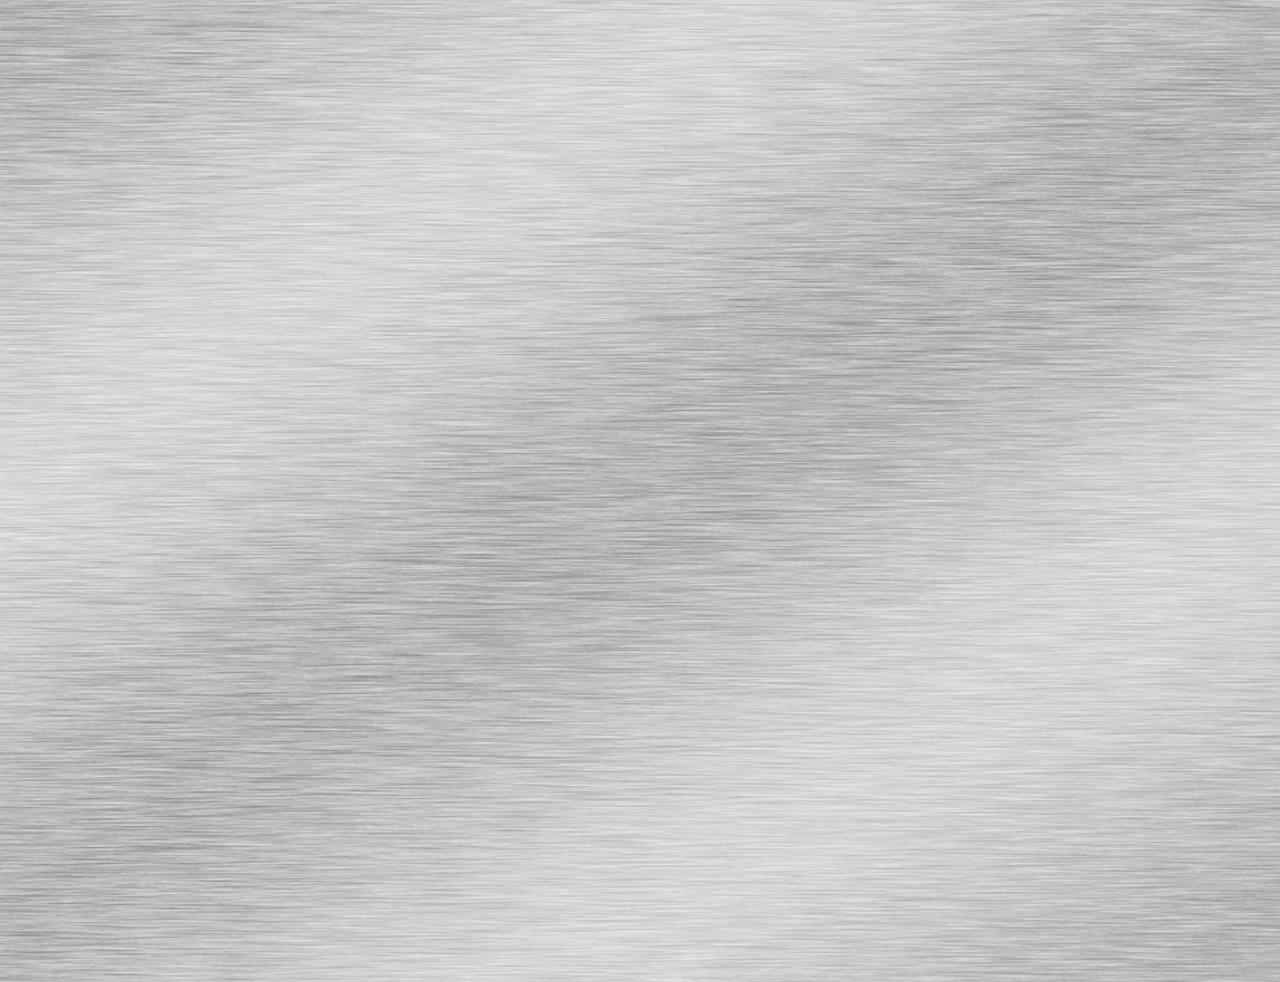 My Brushed Metal Texture by j4nuw3 on deviantART